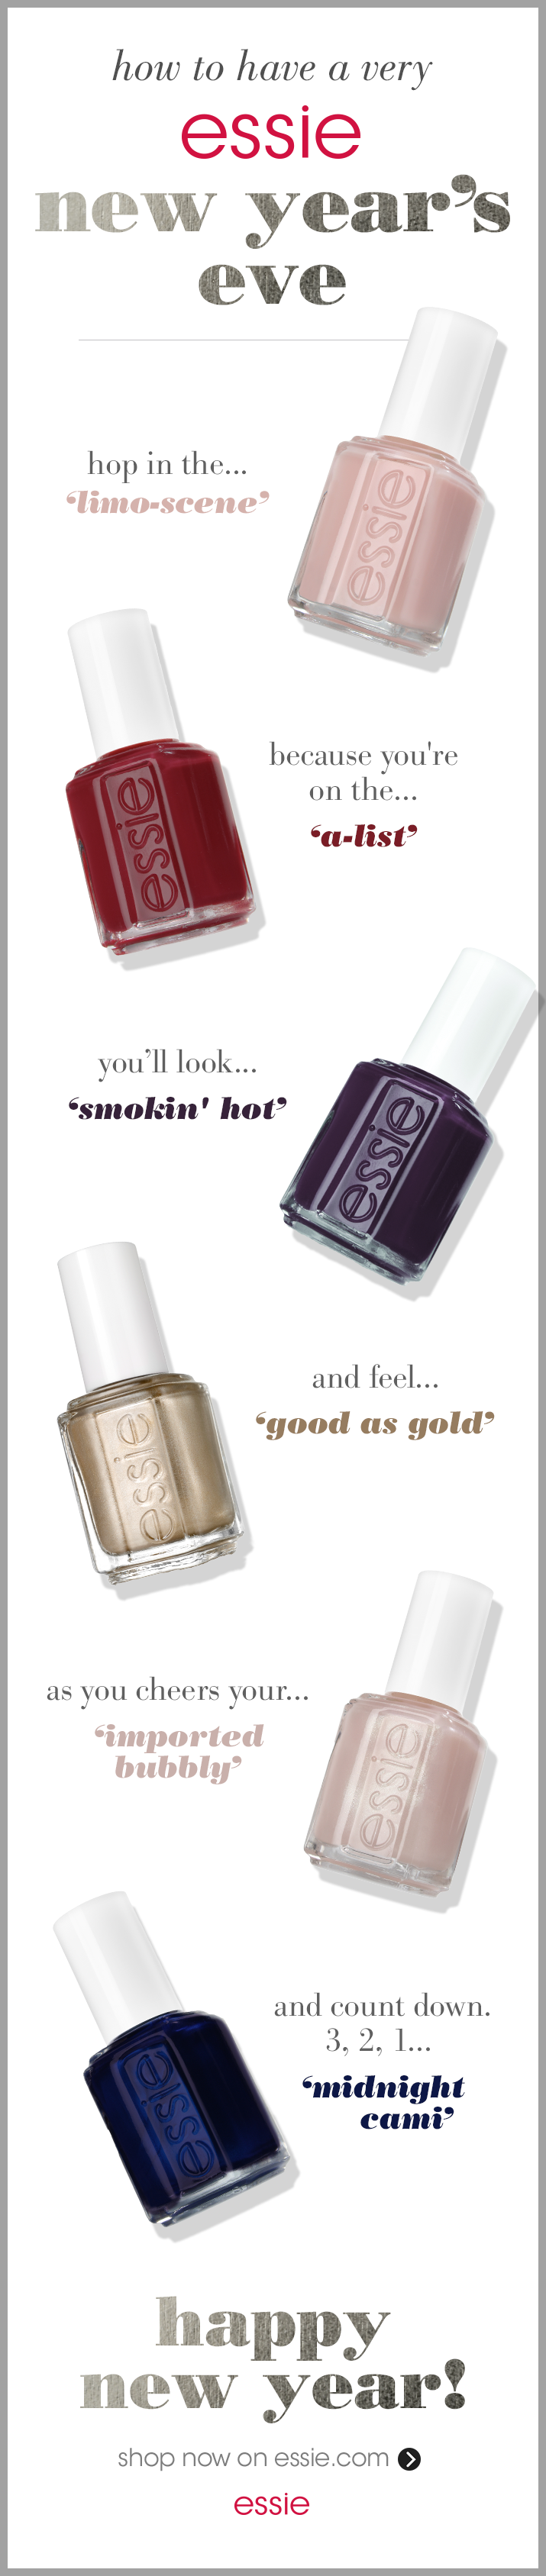 Looking To Have A Very Essie New Year S Eve Look No Further Hop In The Limo Scene Because You Re On The Essie Manicures Nail Polish Nail Polish Art Designs